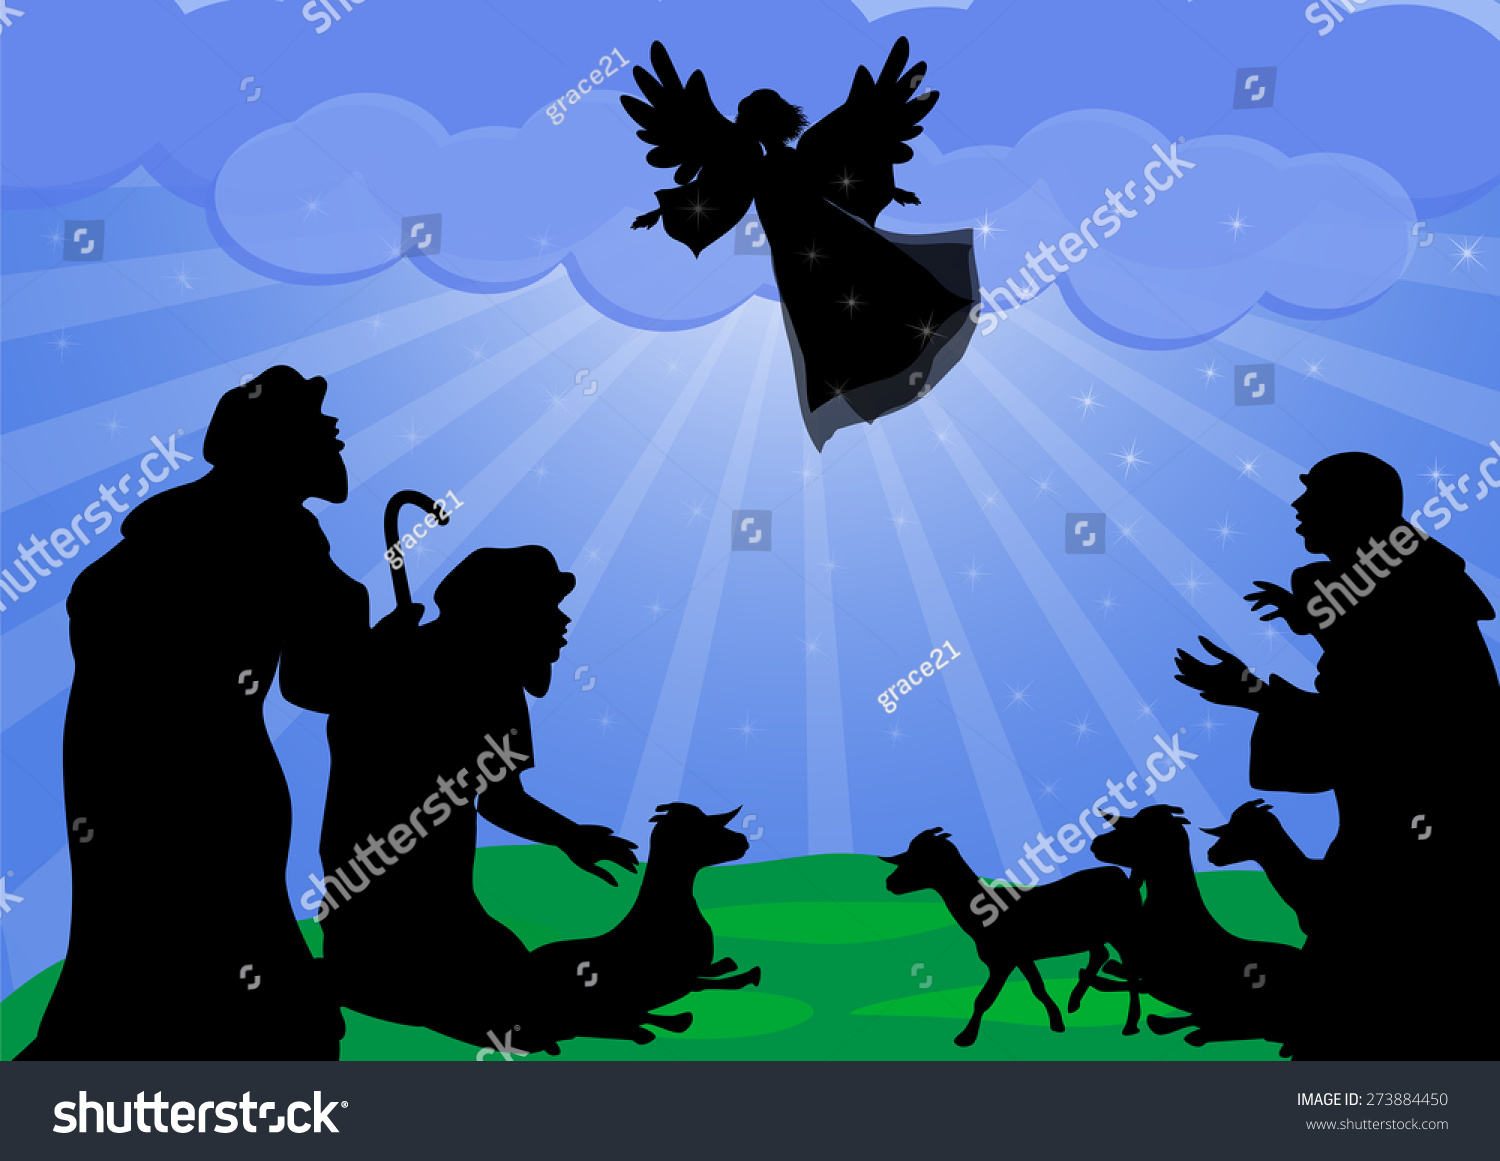 Shepherds Angel Silhouetteangel Announced Shepherds Birth – Who Announced the Birth of Jesus